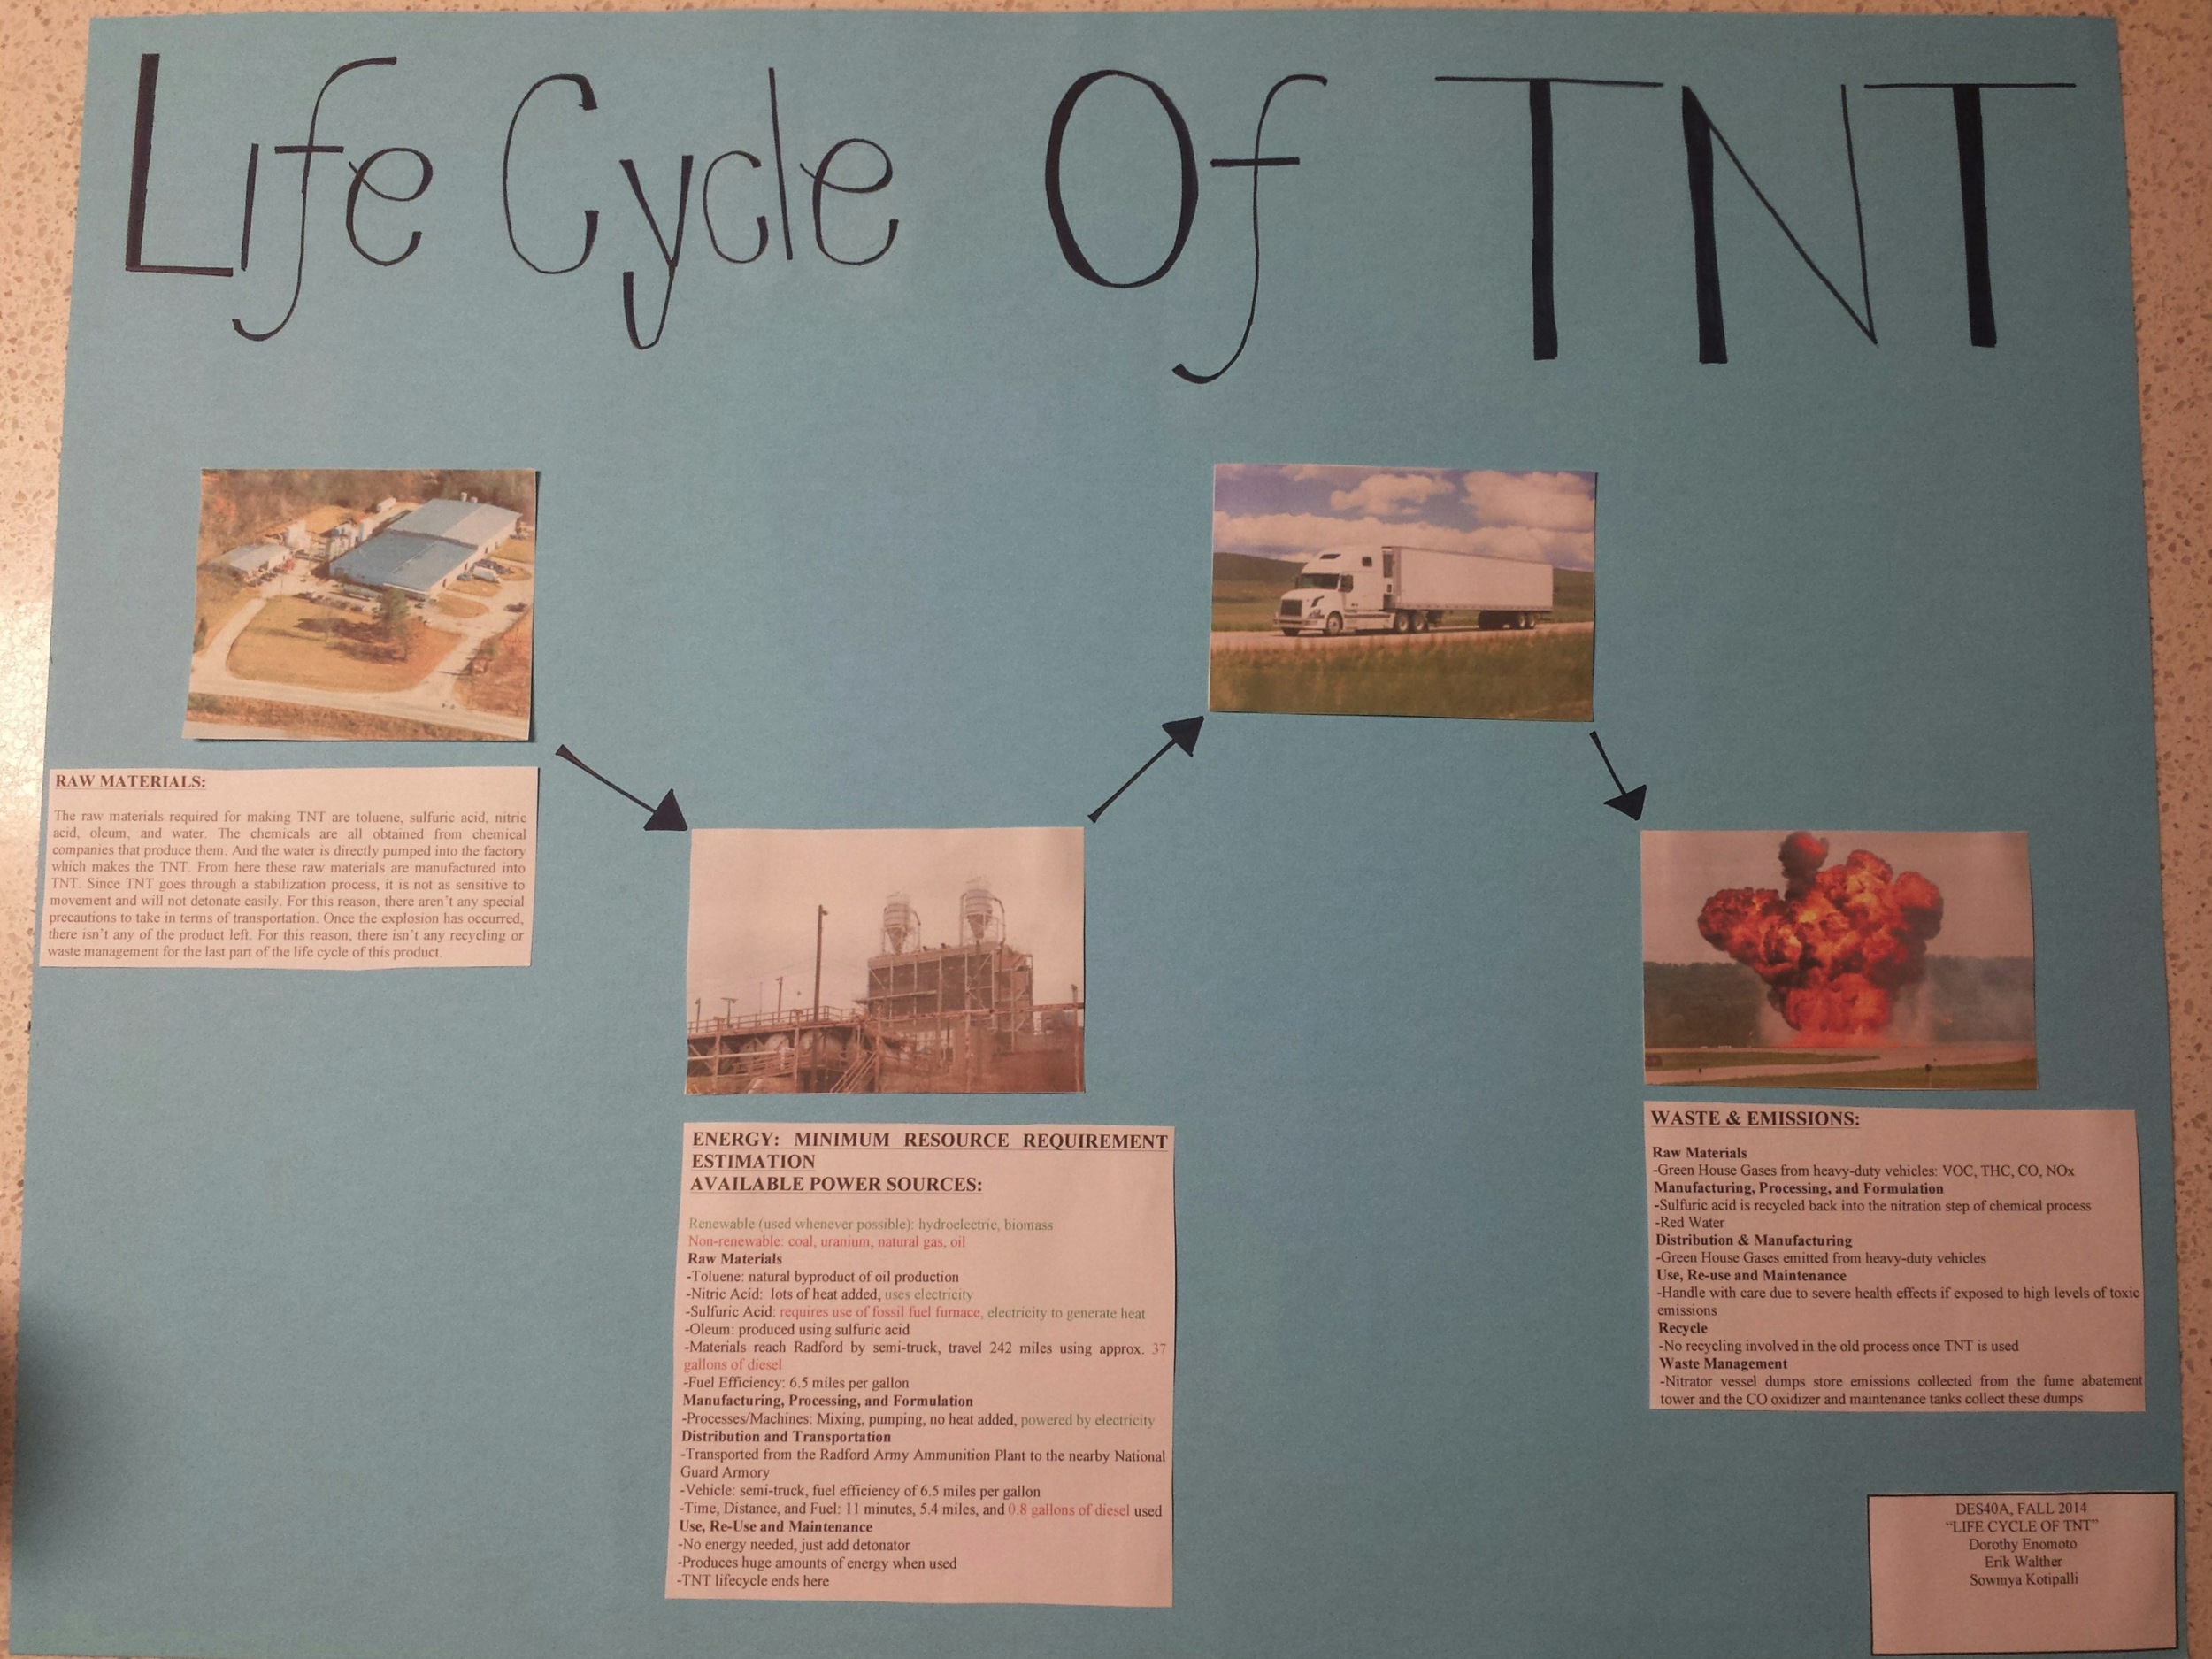 Life Cycle of TNT